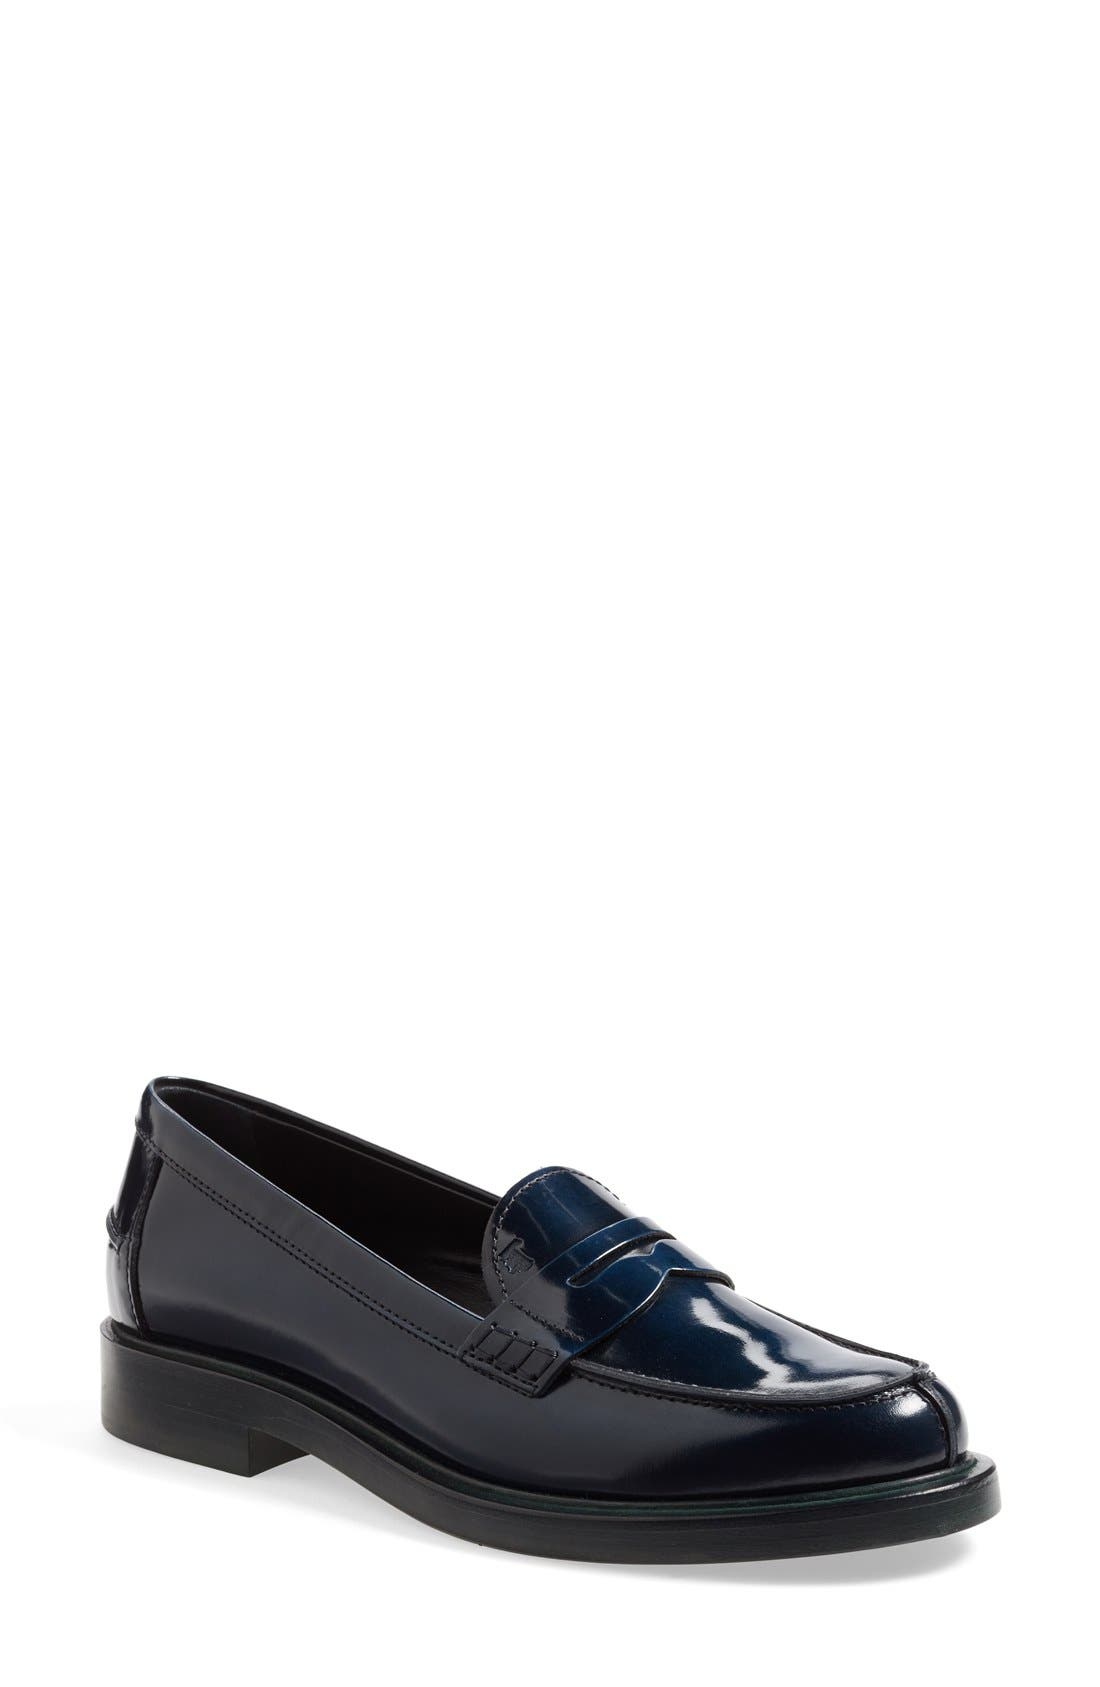 Main Image - Tod's Leather Penny Loafer (Women)